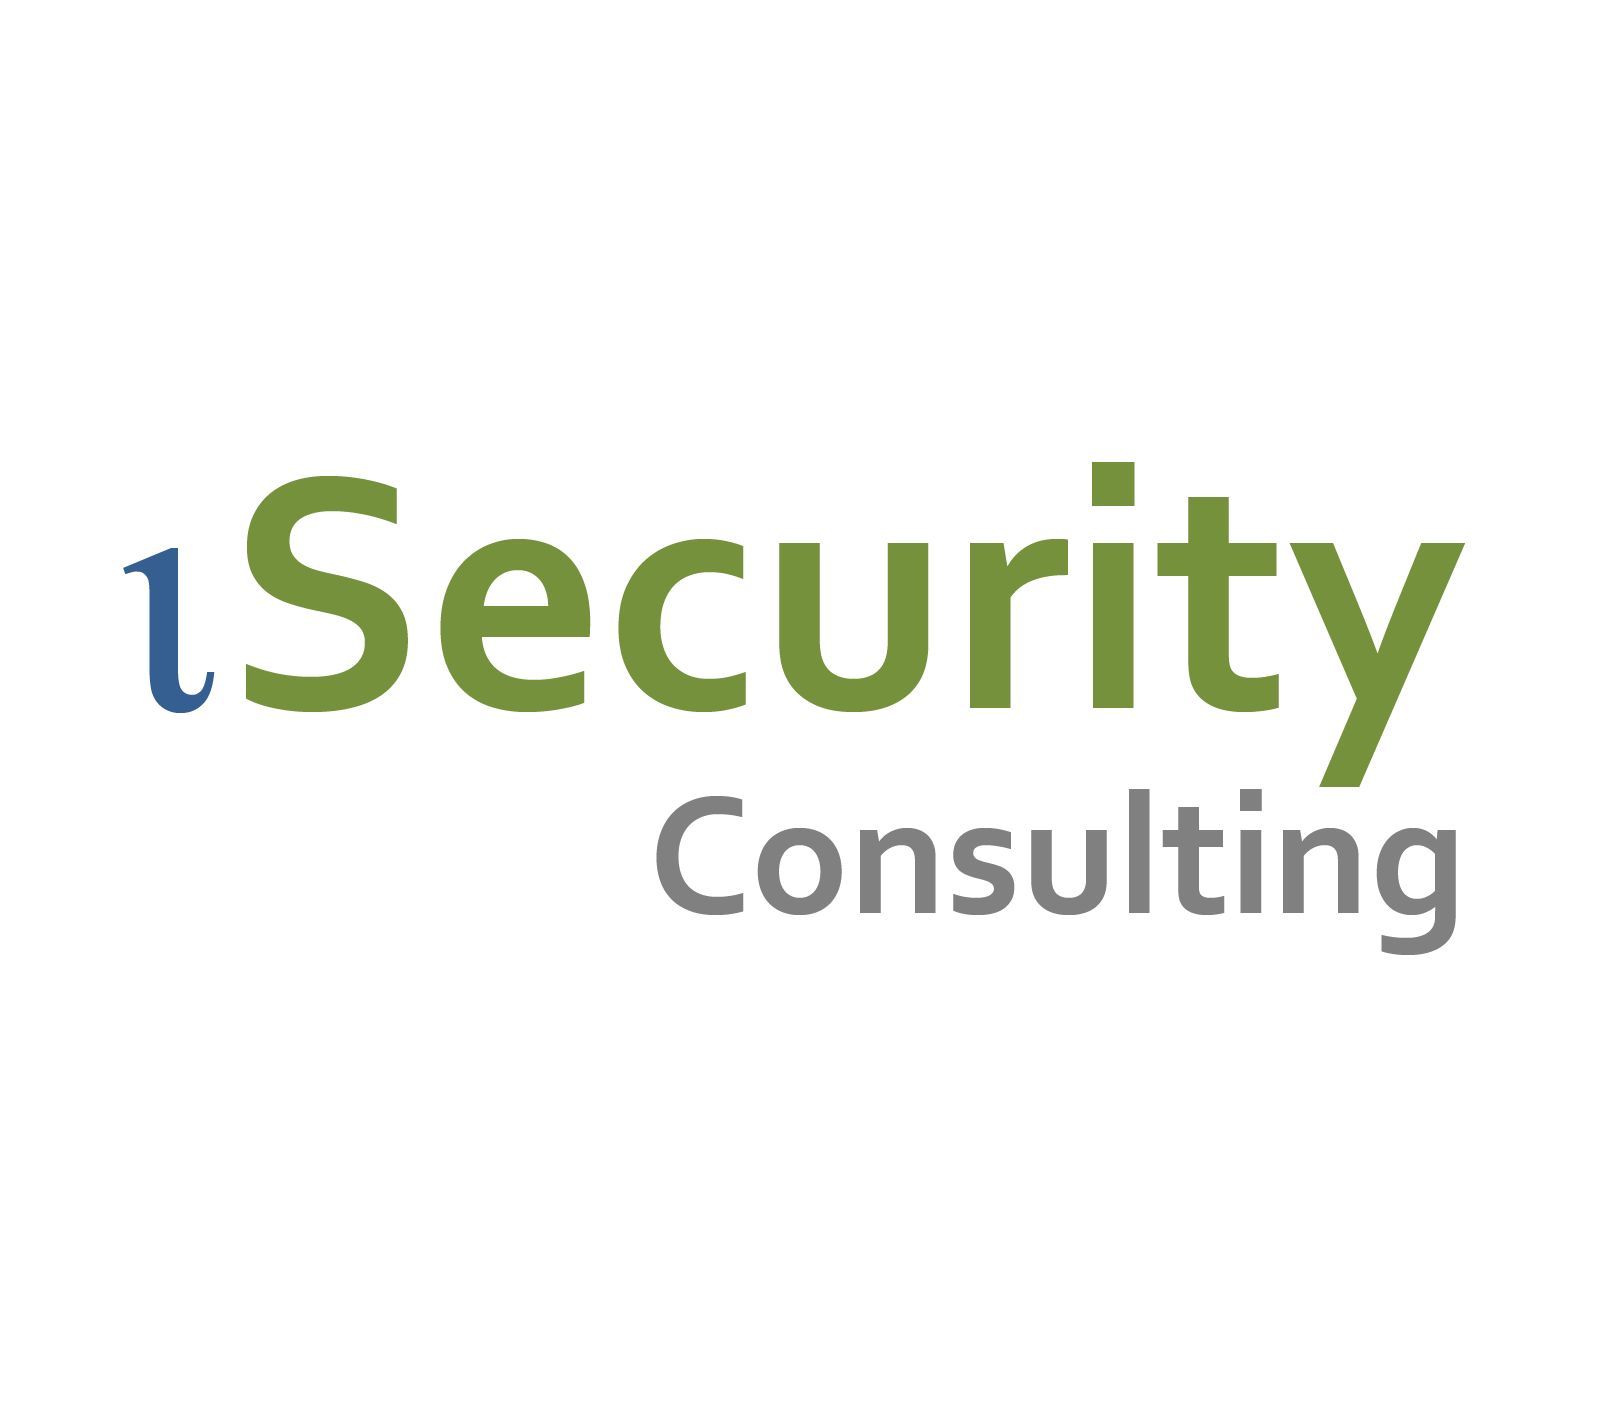 iSecurity Consulting - Corporate Identity 2016-02.png